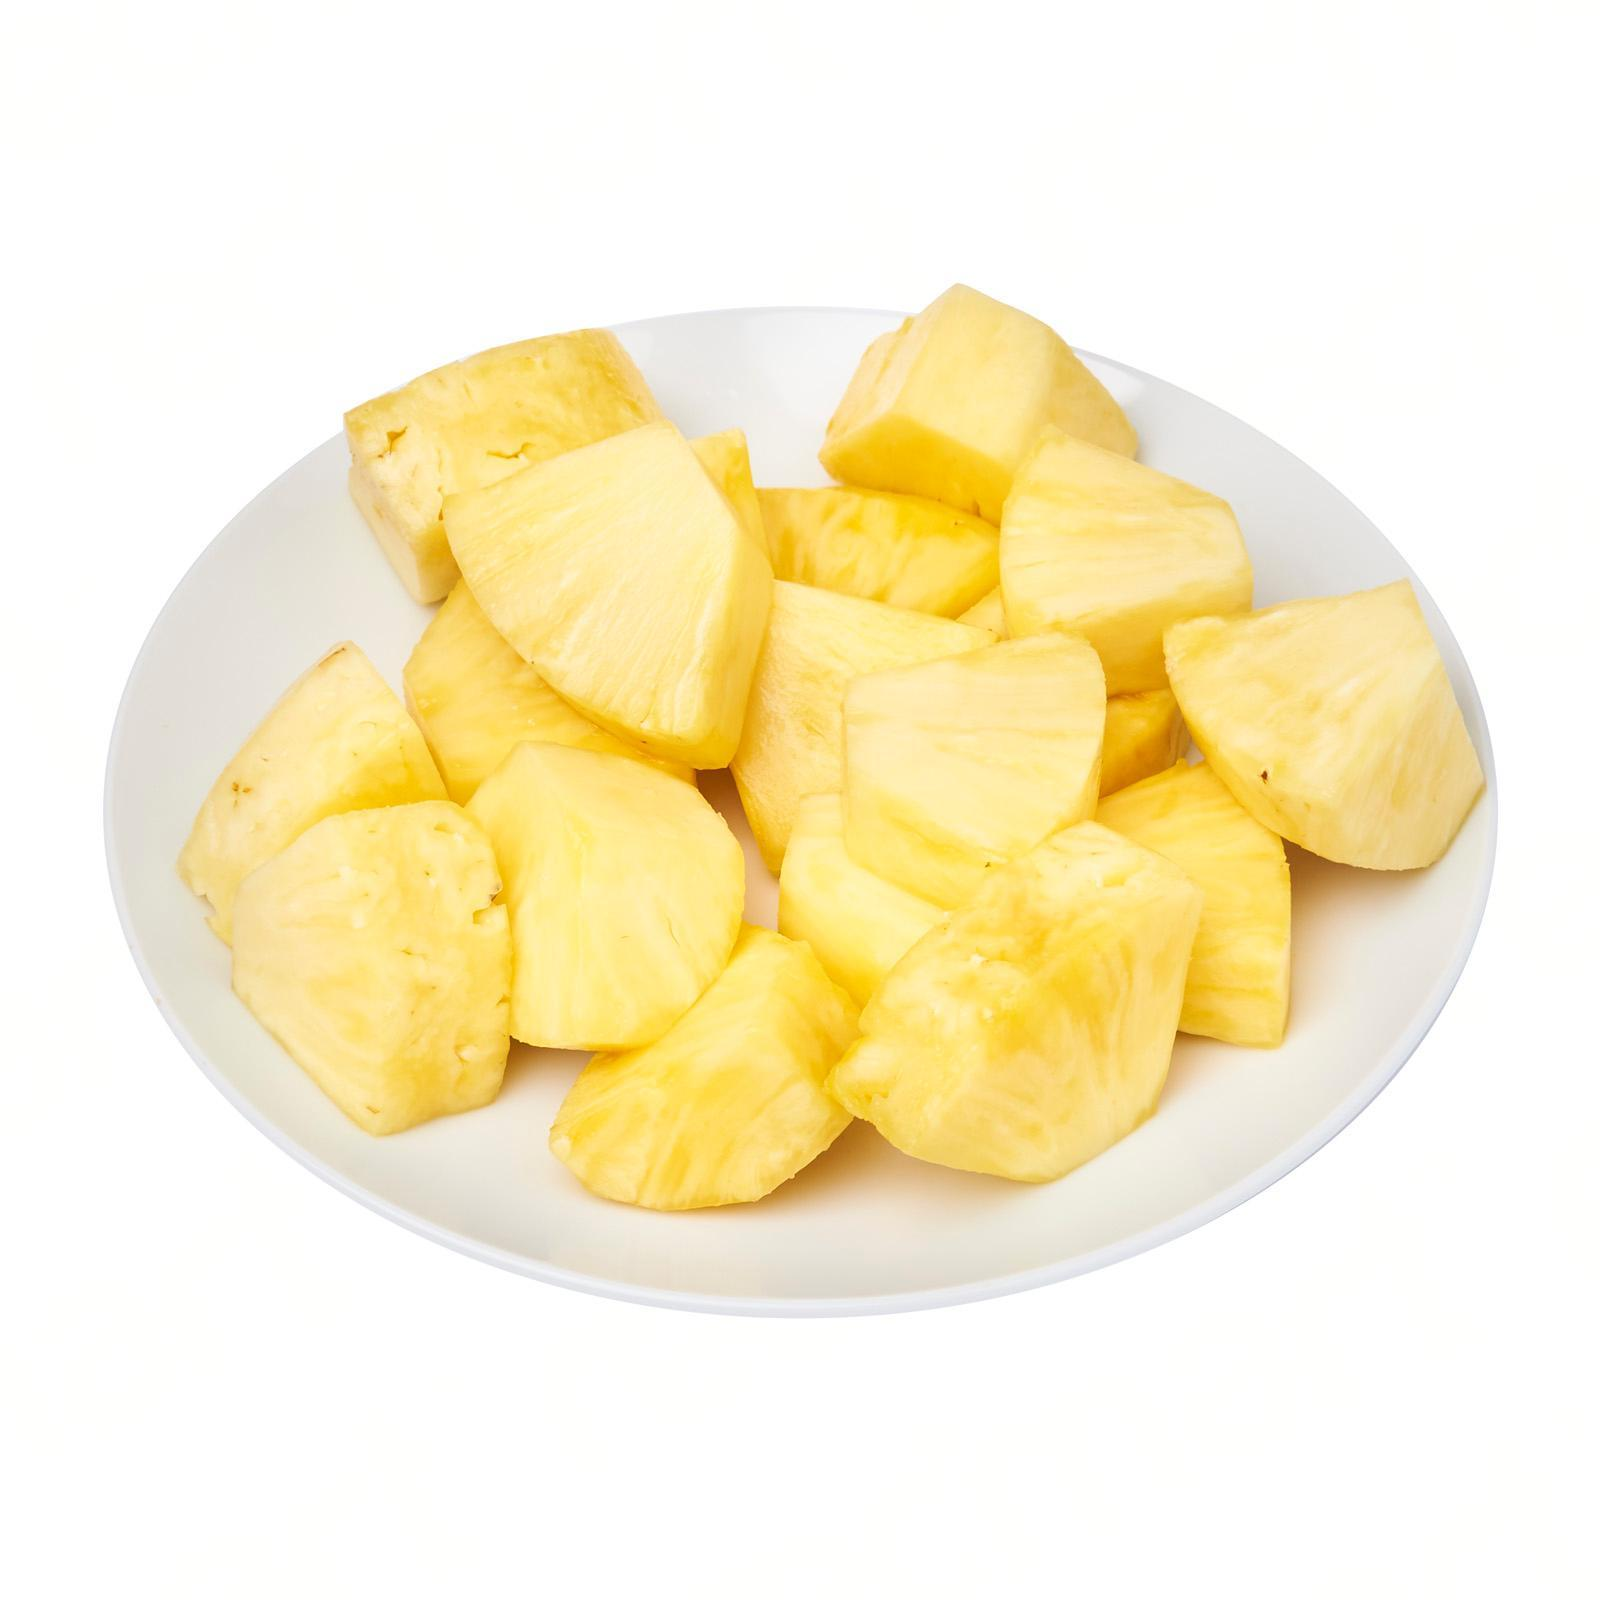 Sunny Fruit Fresh Pineapples Sliced